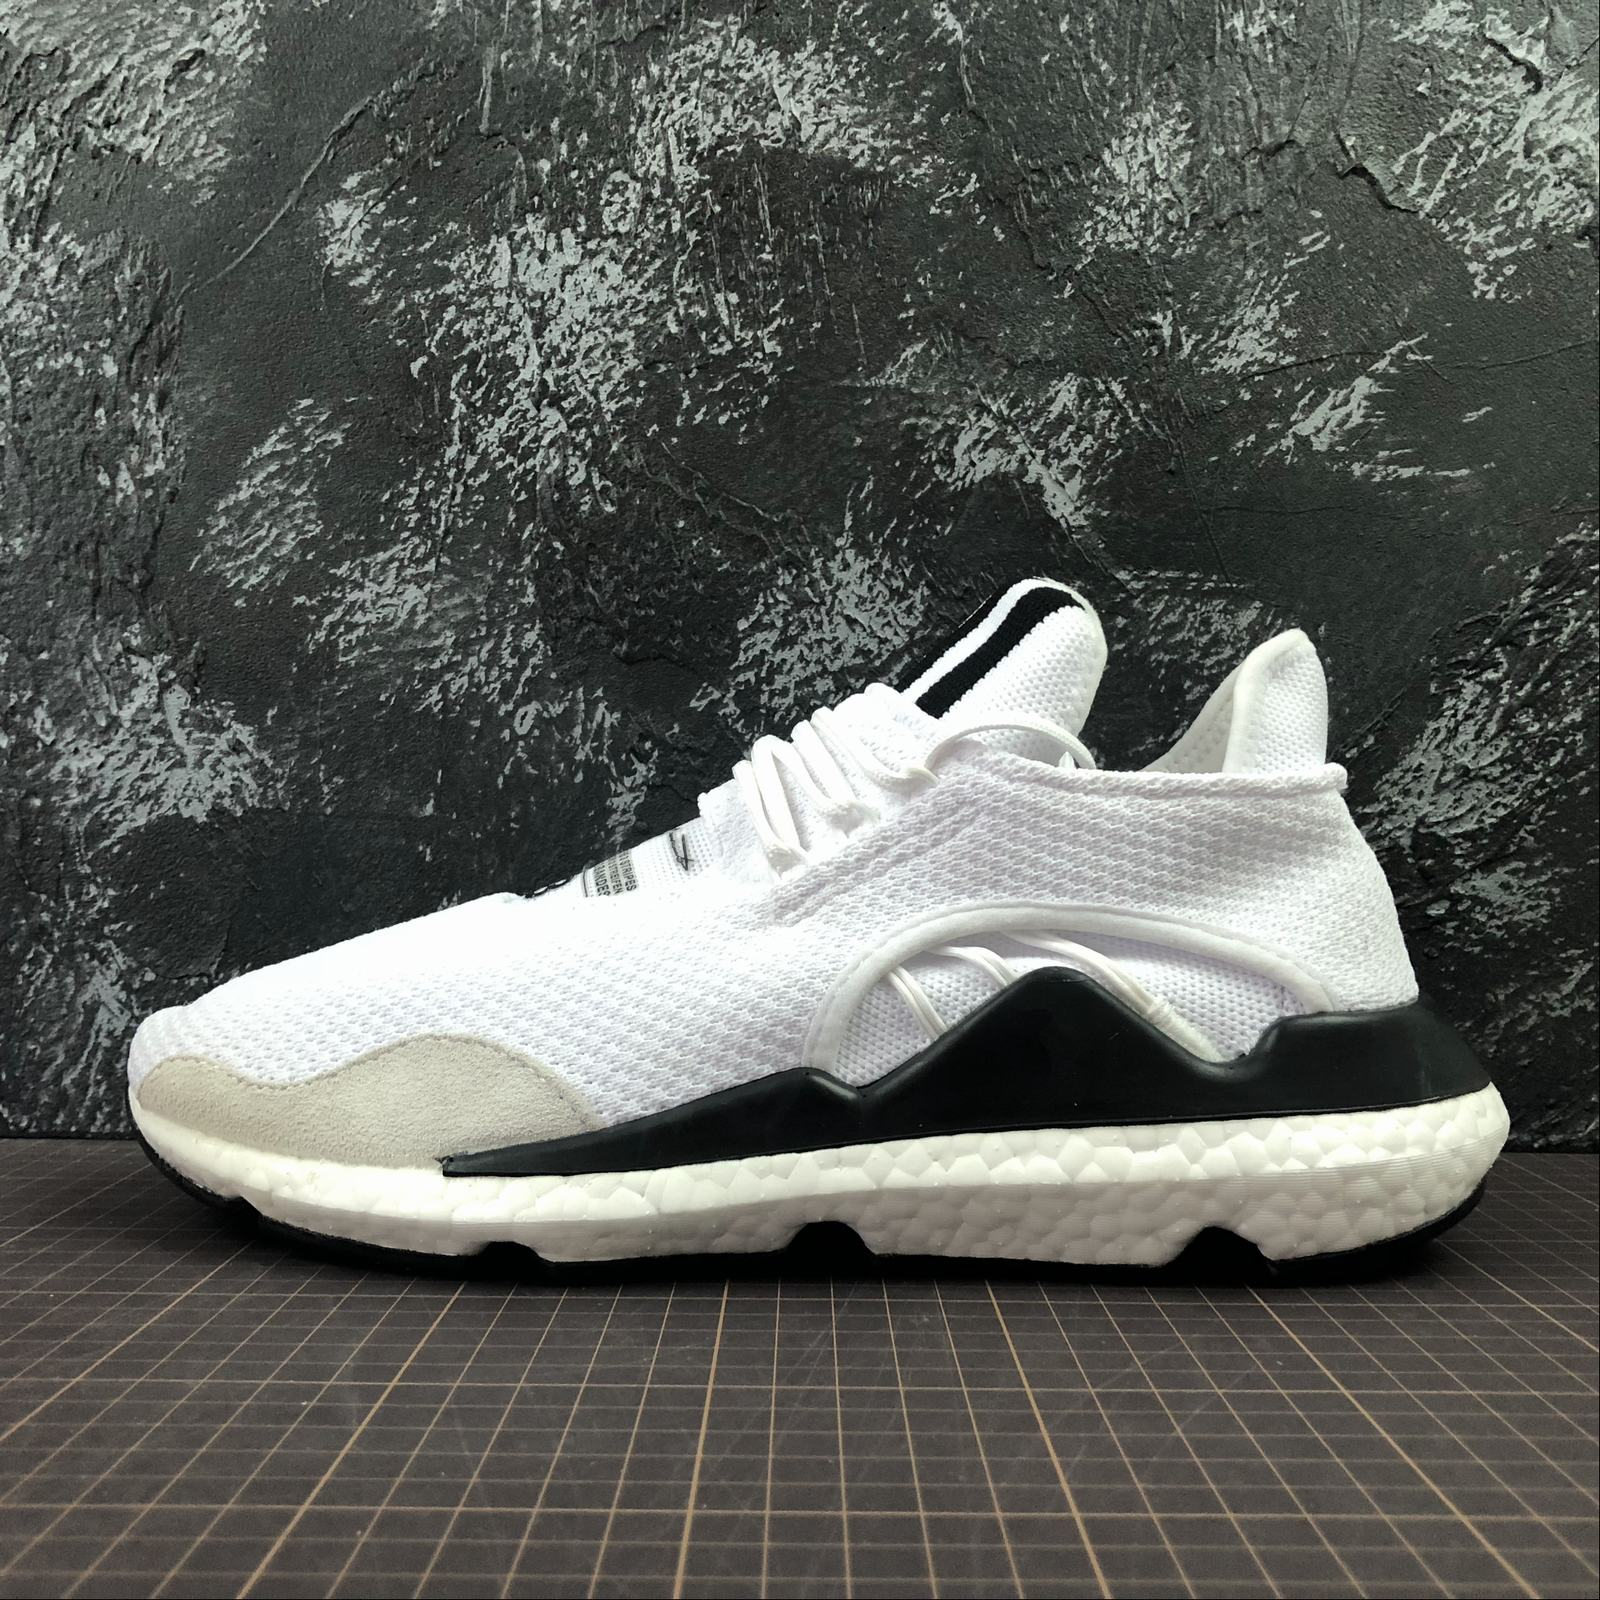 Мужские кроссовки Adidas Y-3 Saikou Boost Men White,Black,Black